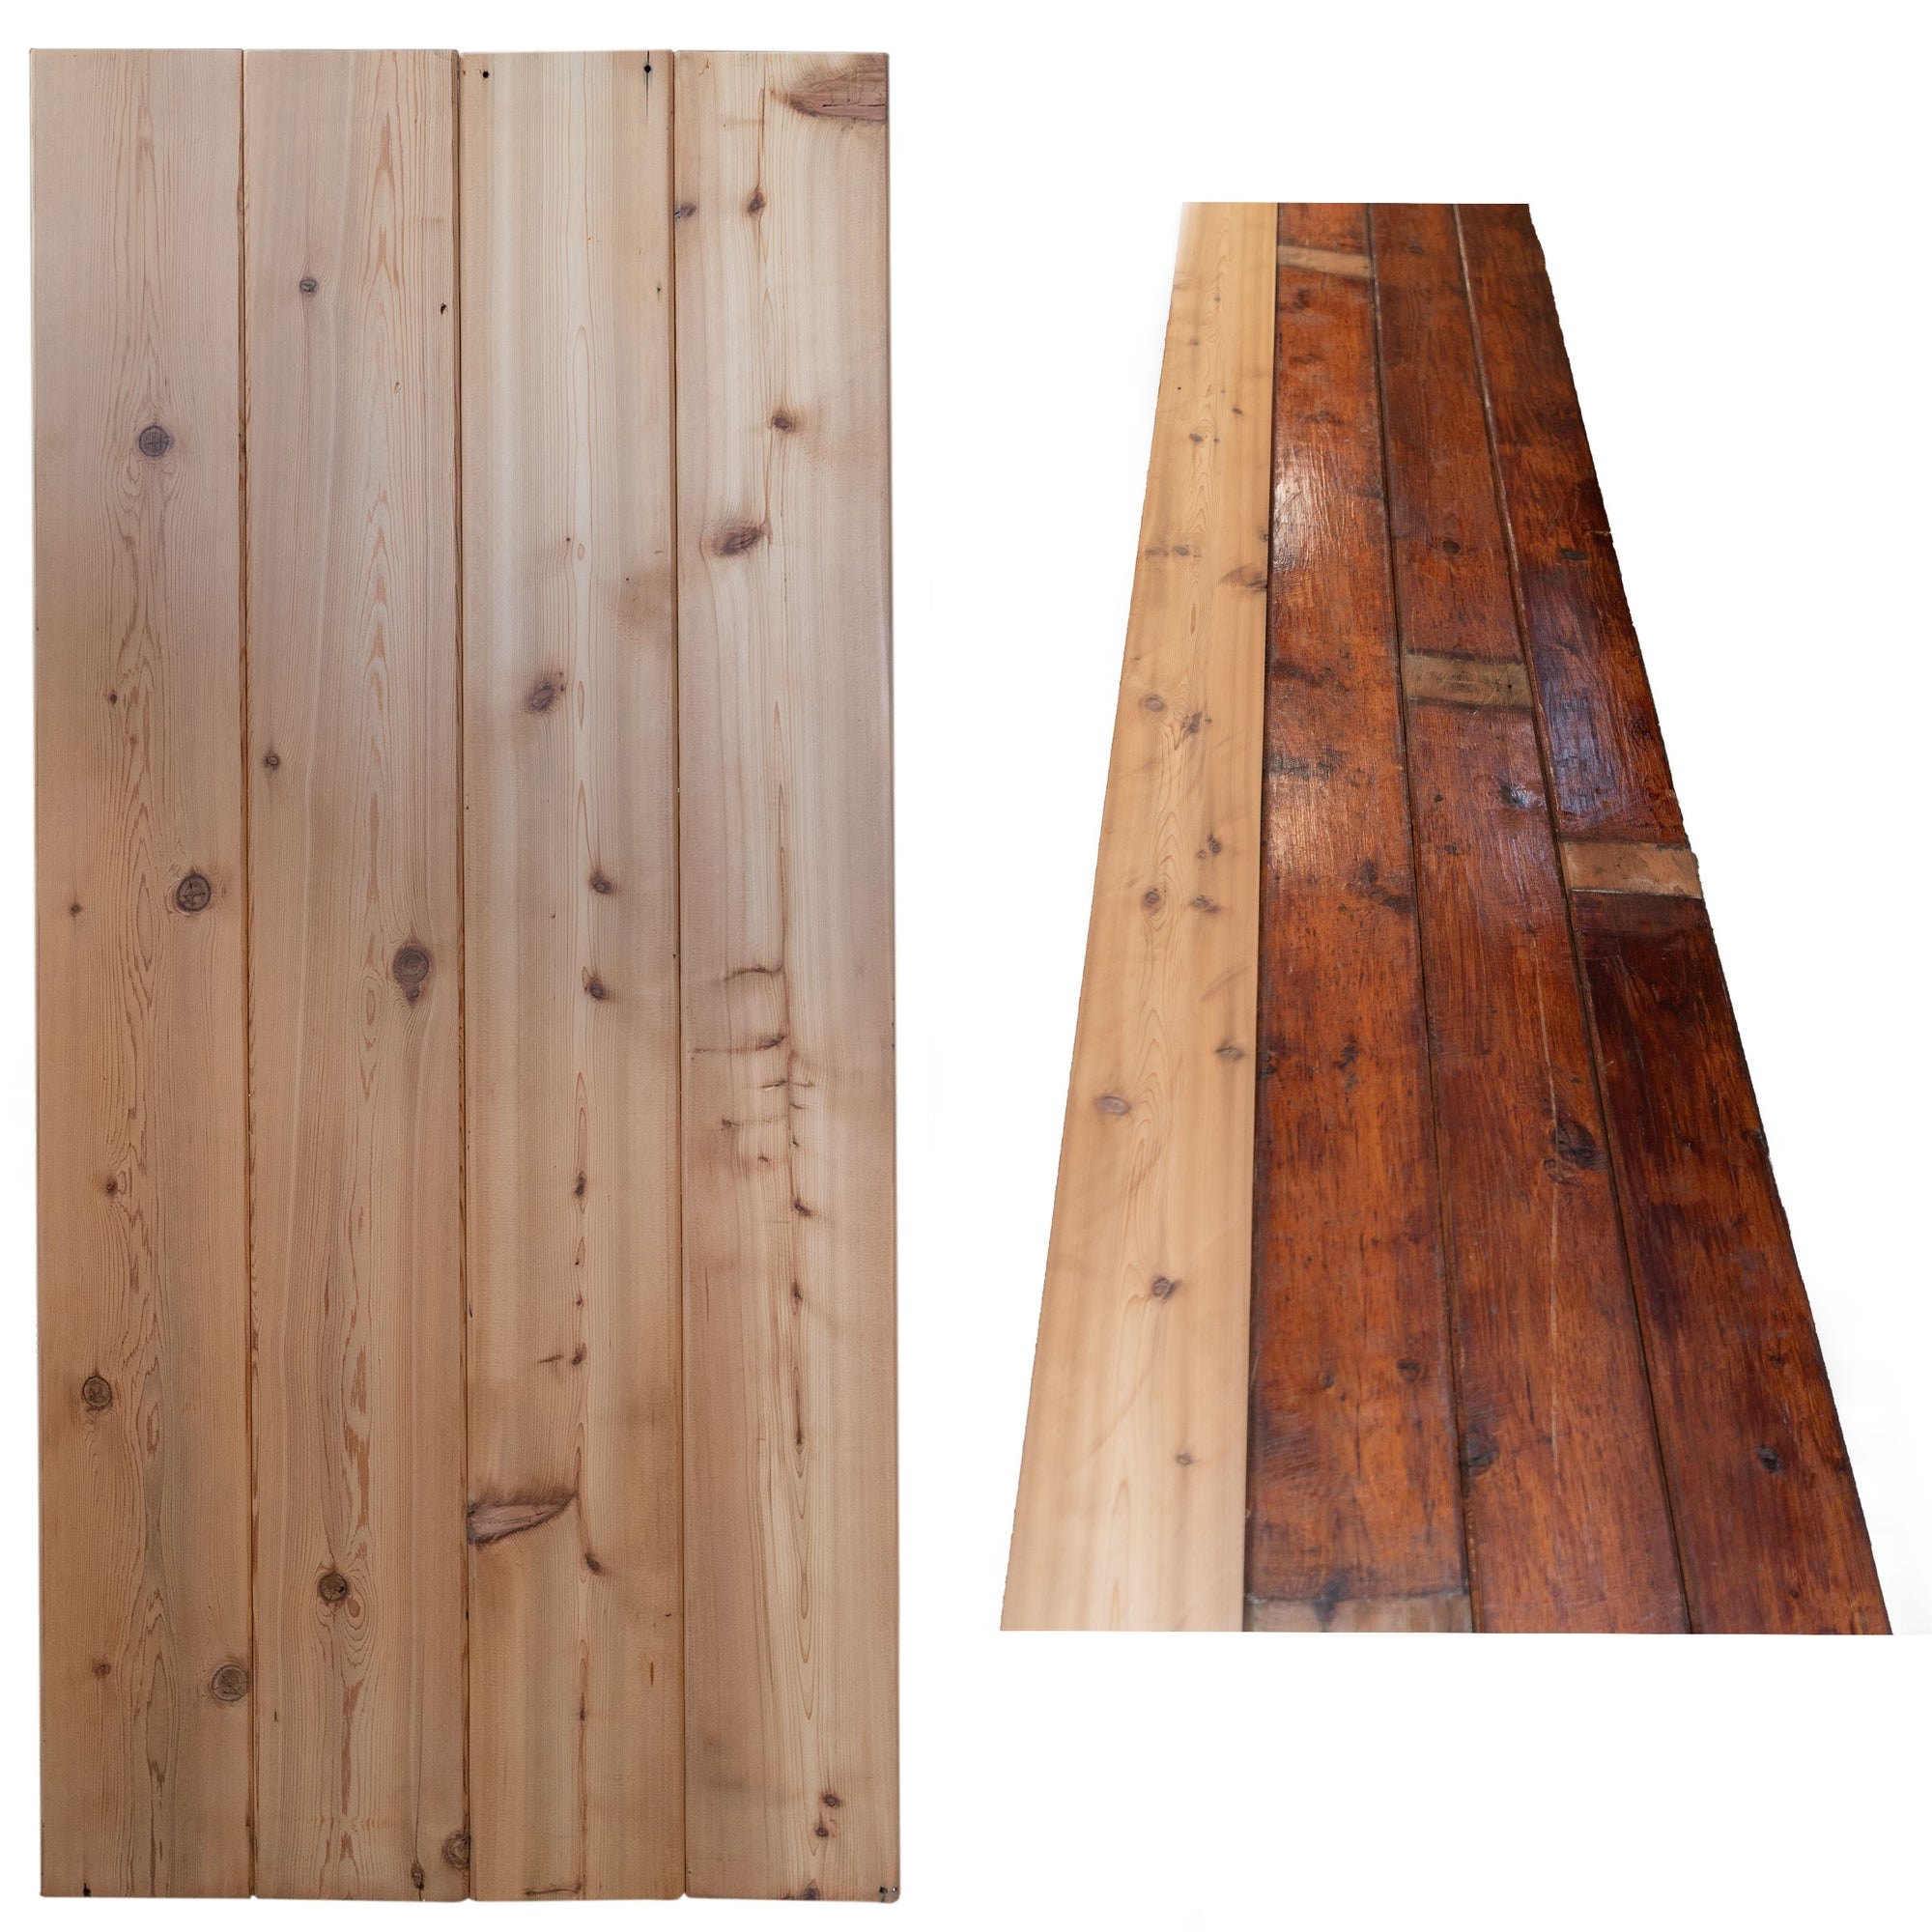 Reclaimed Canadian Seaboard Matching Boards from Commonwealth Institute 65M² available - architectural-forum